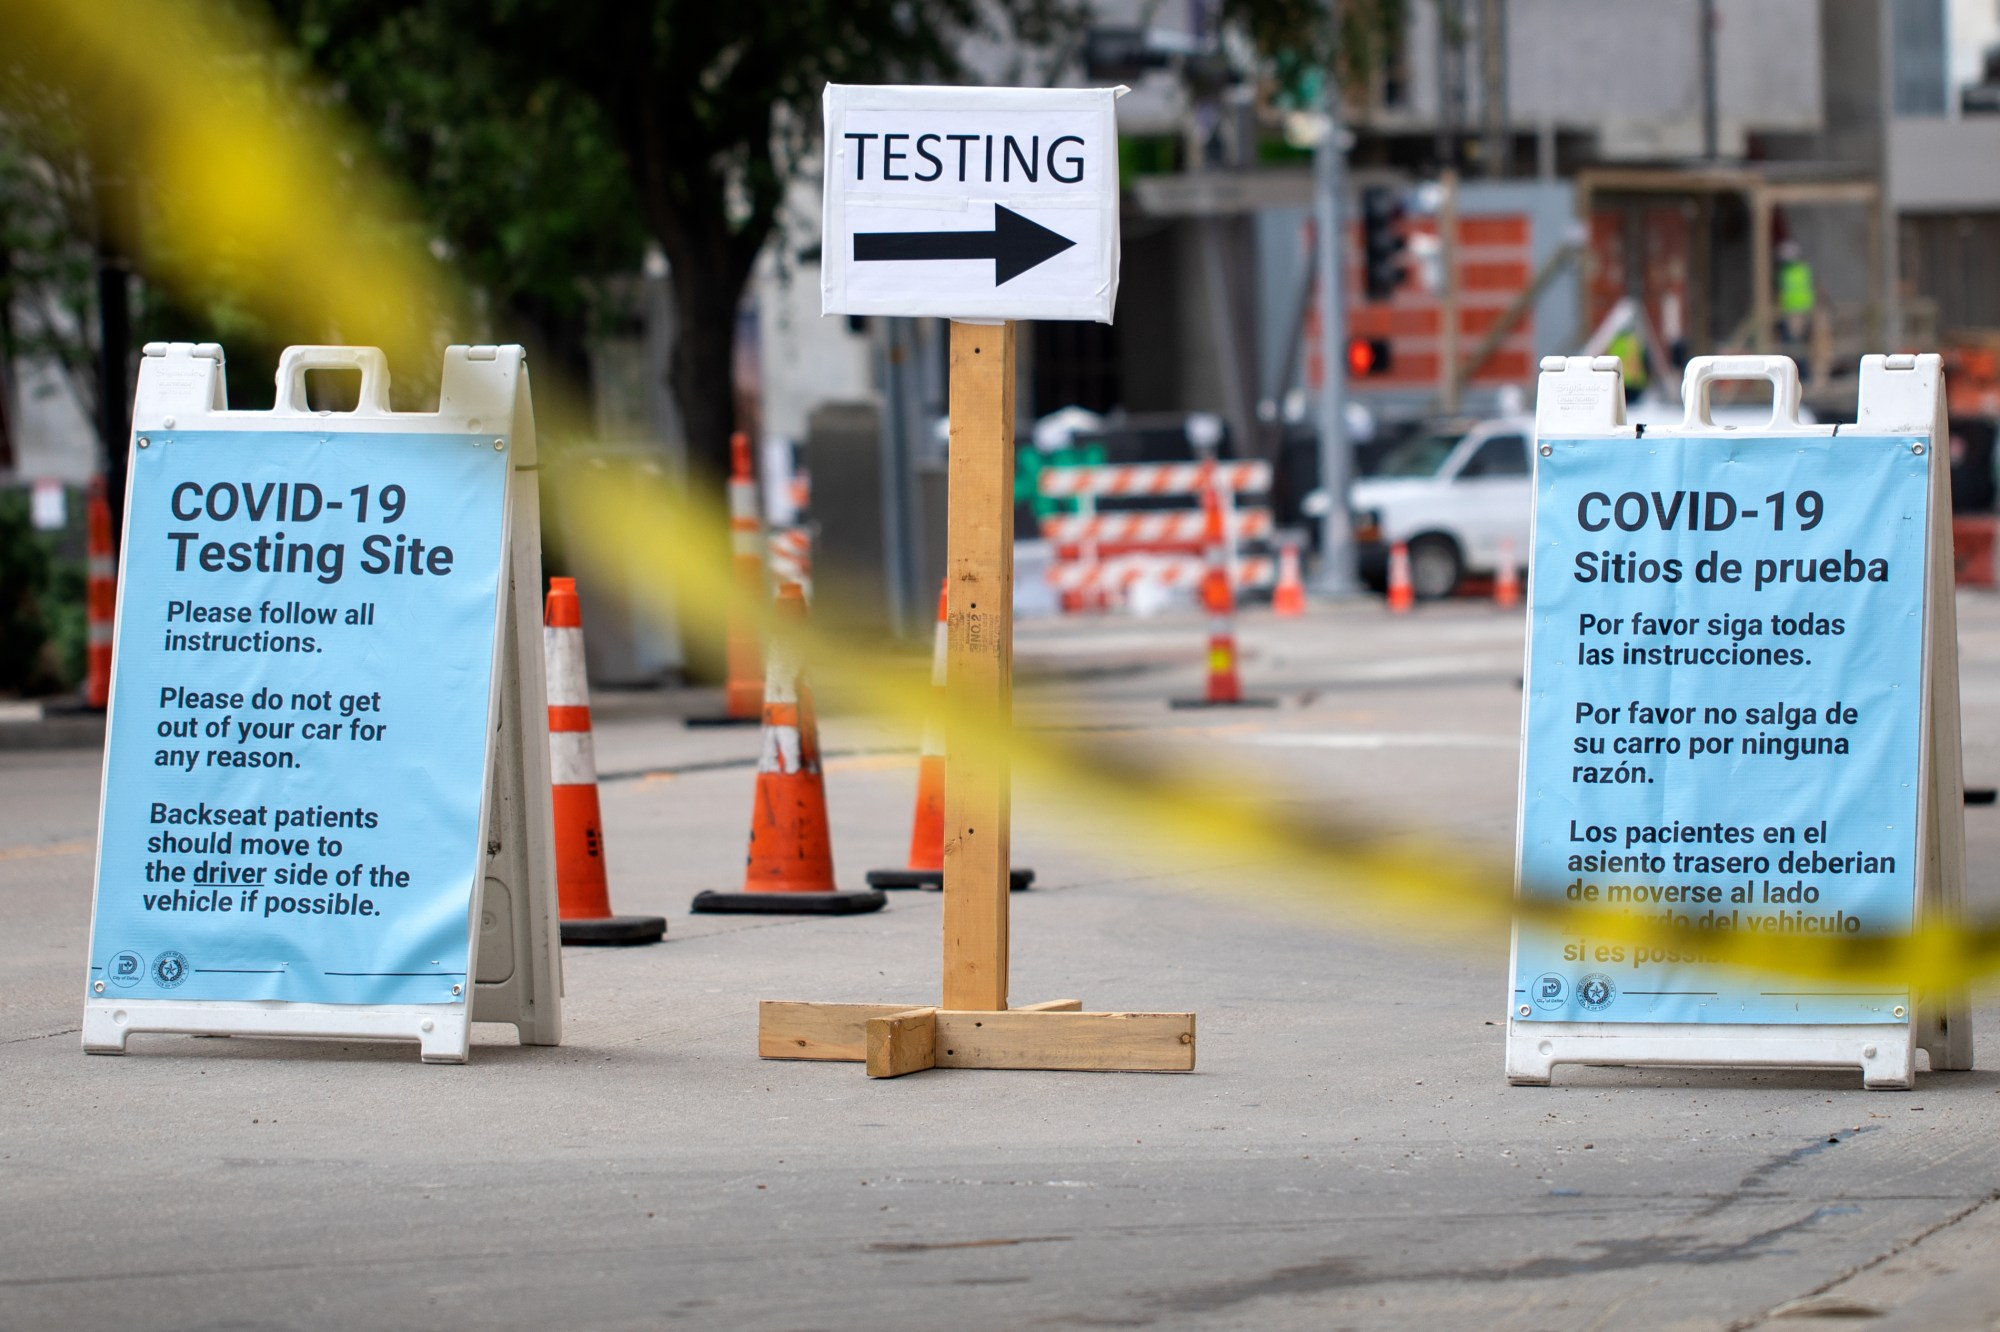 Cars wait in line at a drive up COVID-19 testing site inside the American Airlines Center parking garage in Dallas on June 27, 2020. (Montinique Monroe/Getty Images)